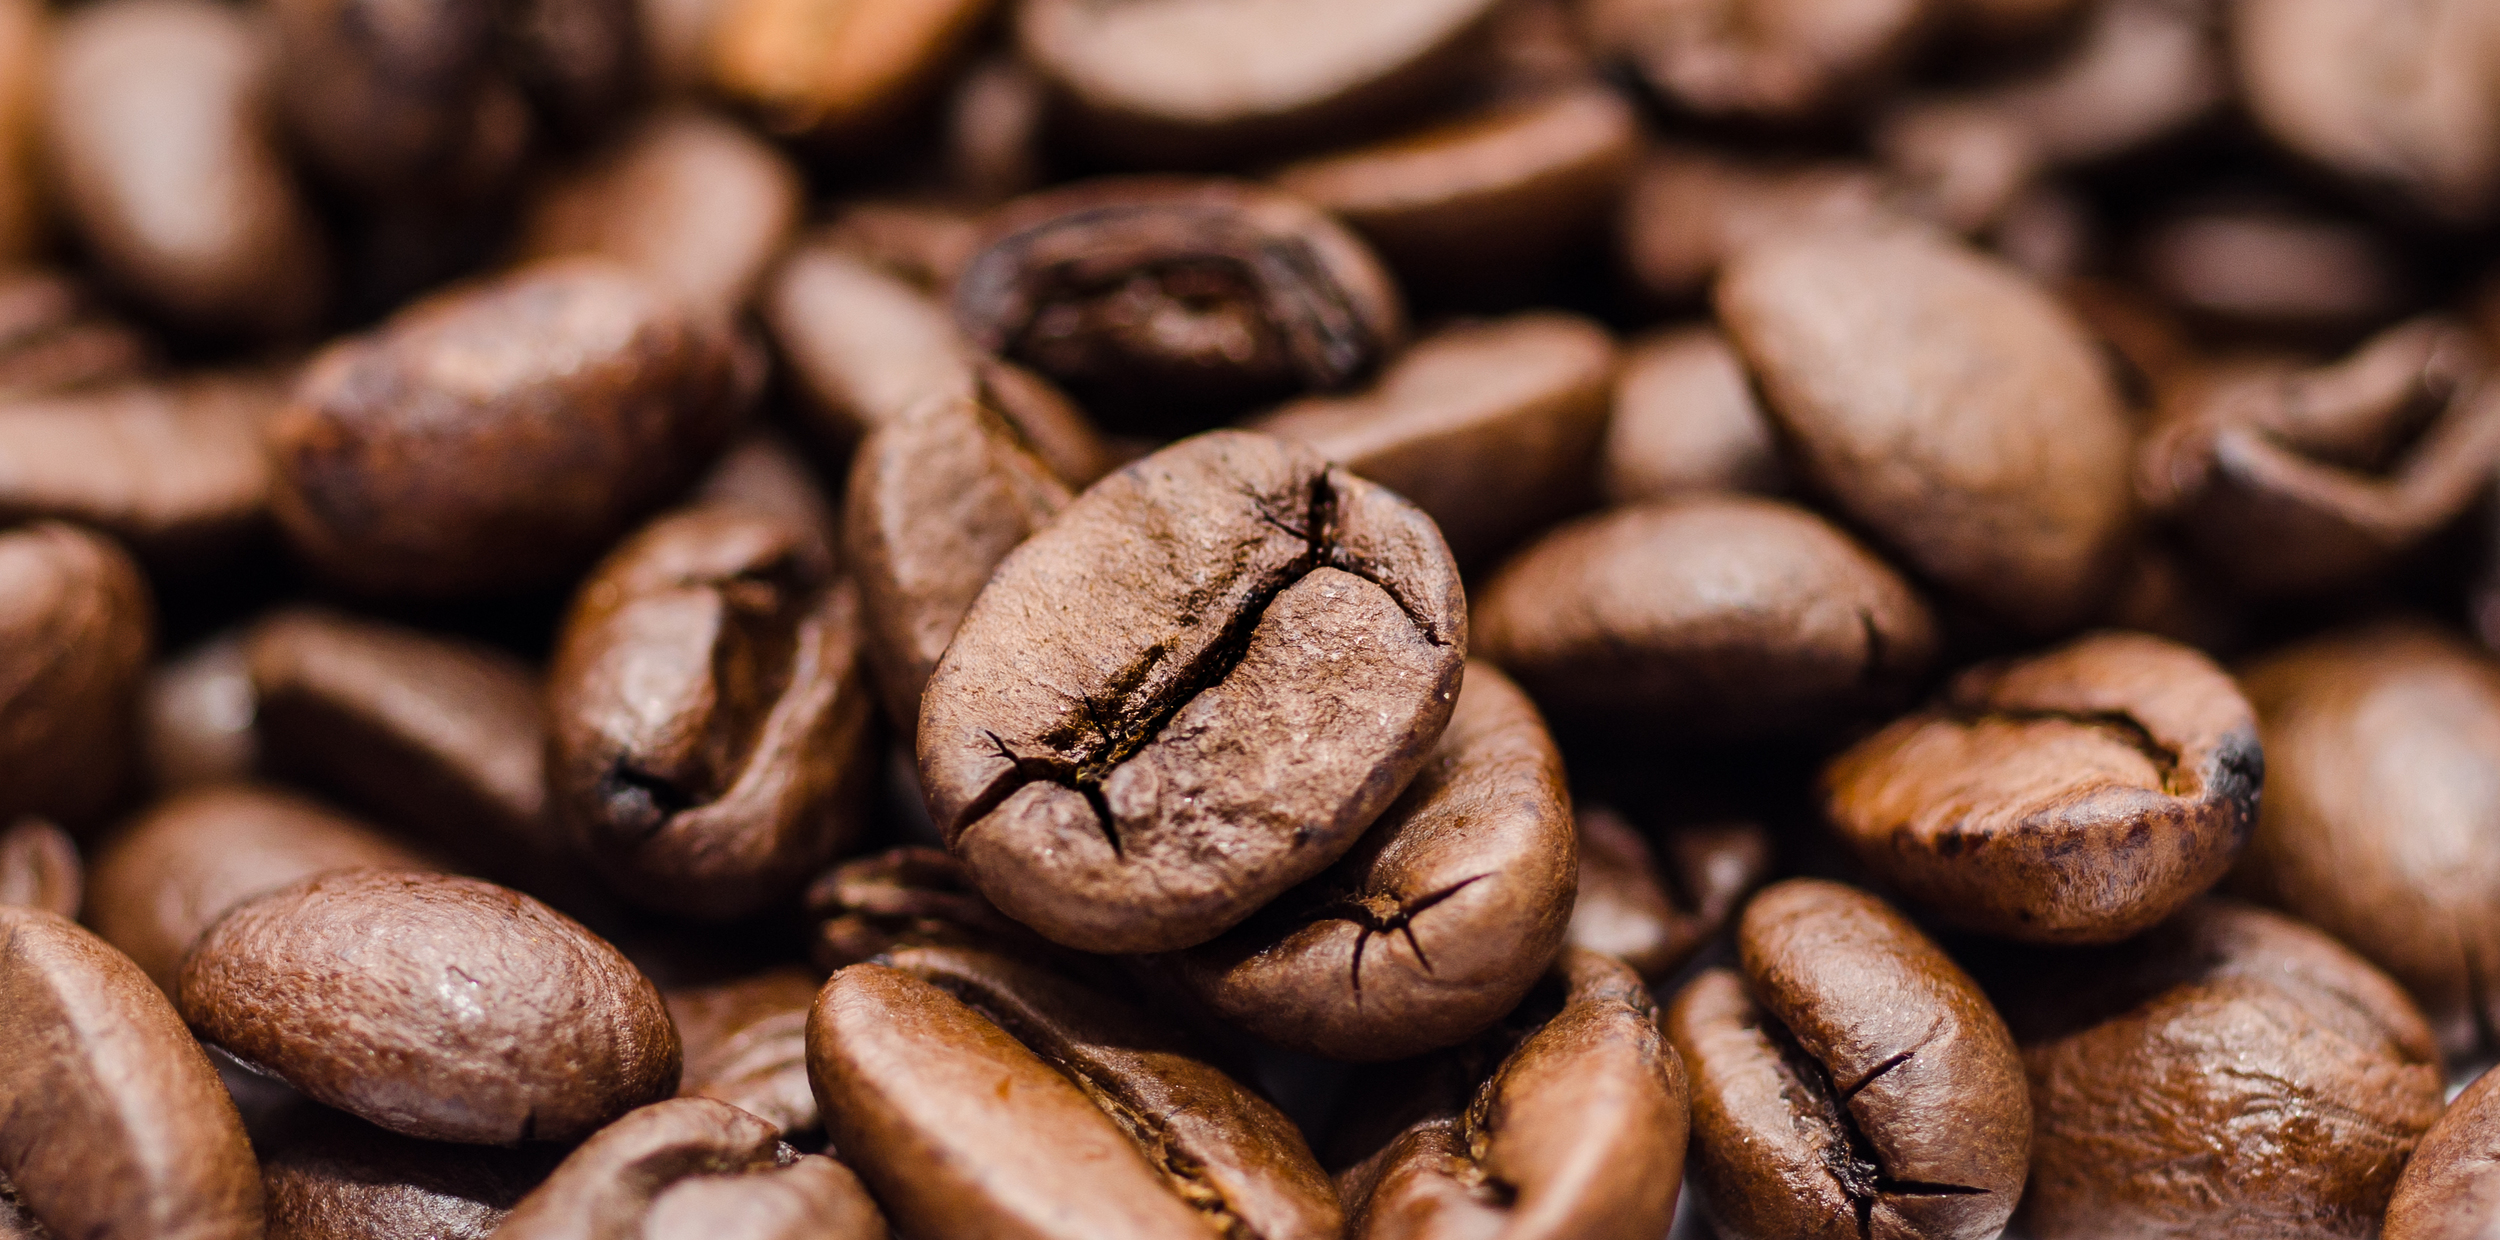 food-beans-coffee-drink.jpg